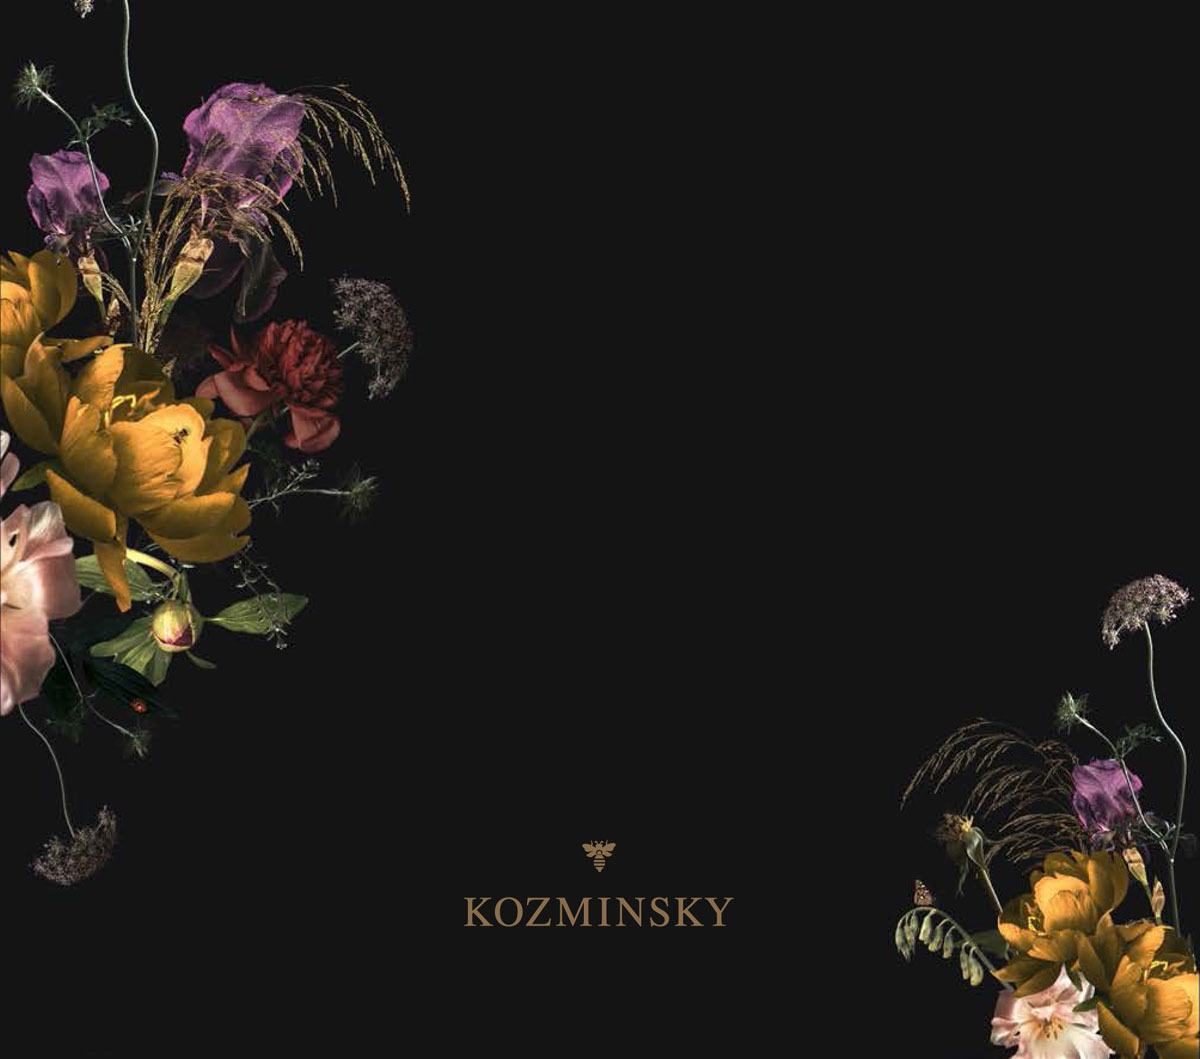 Kozminsky 2018 Catalogue Out Now